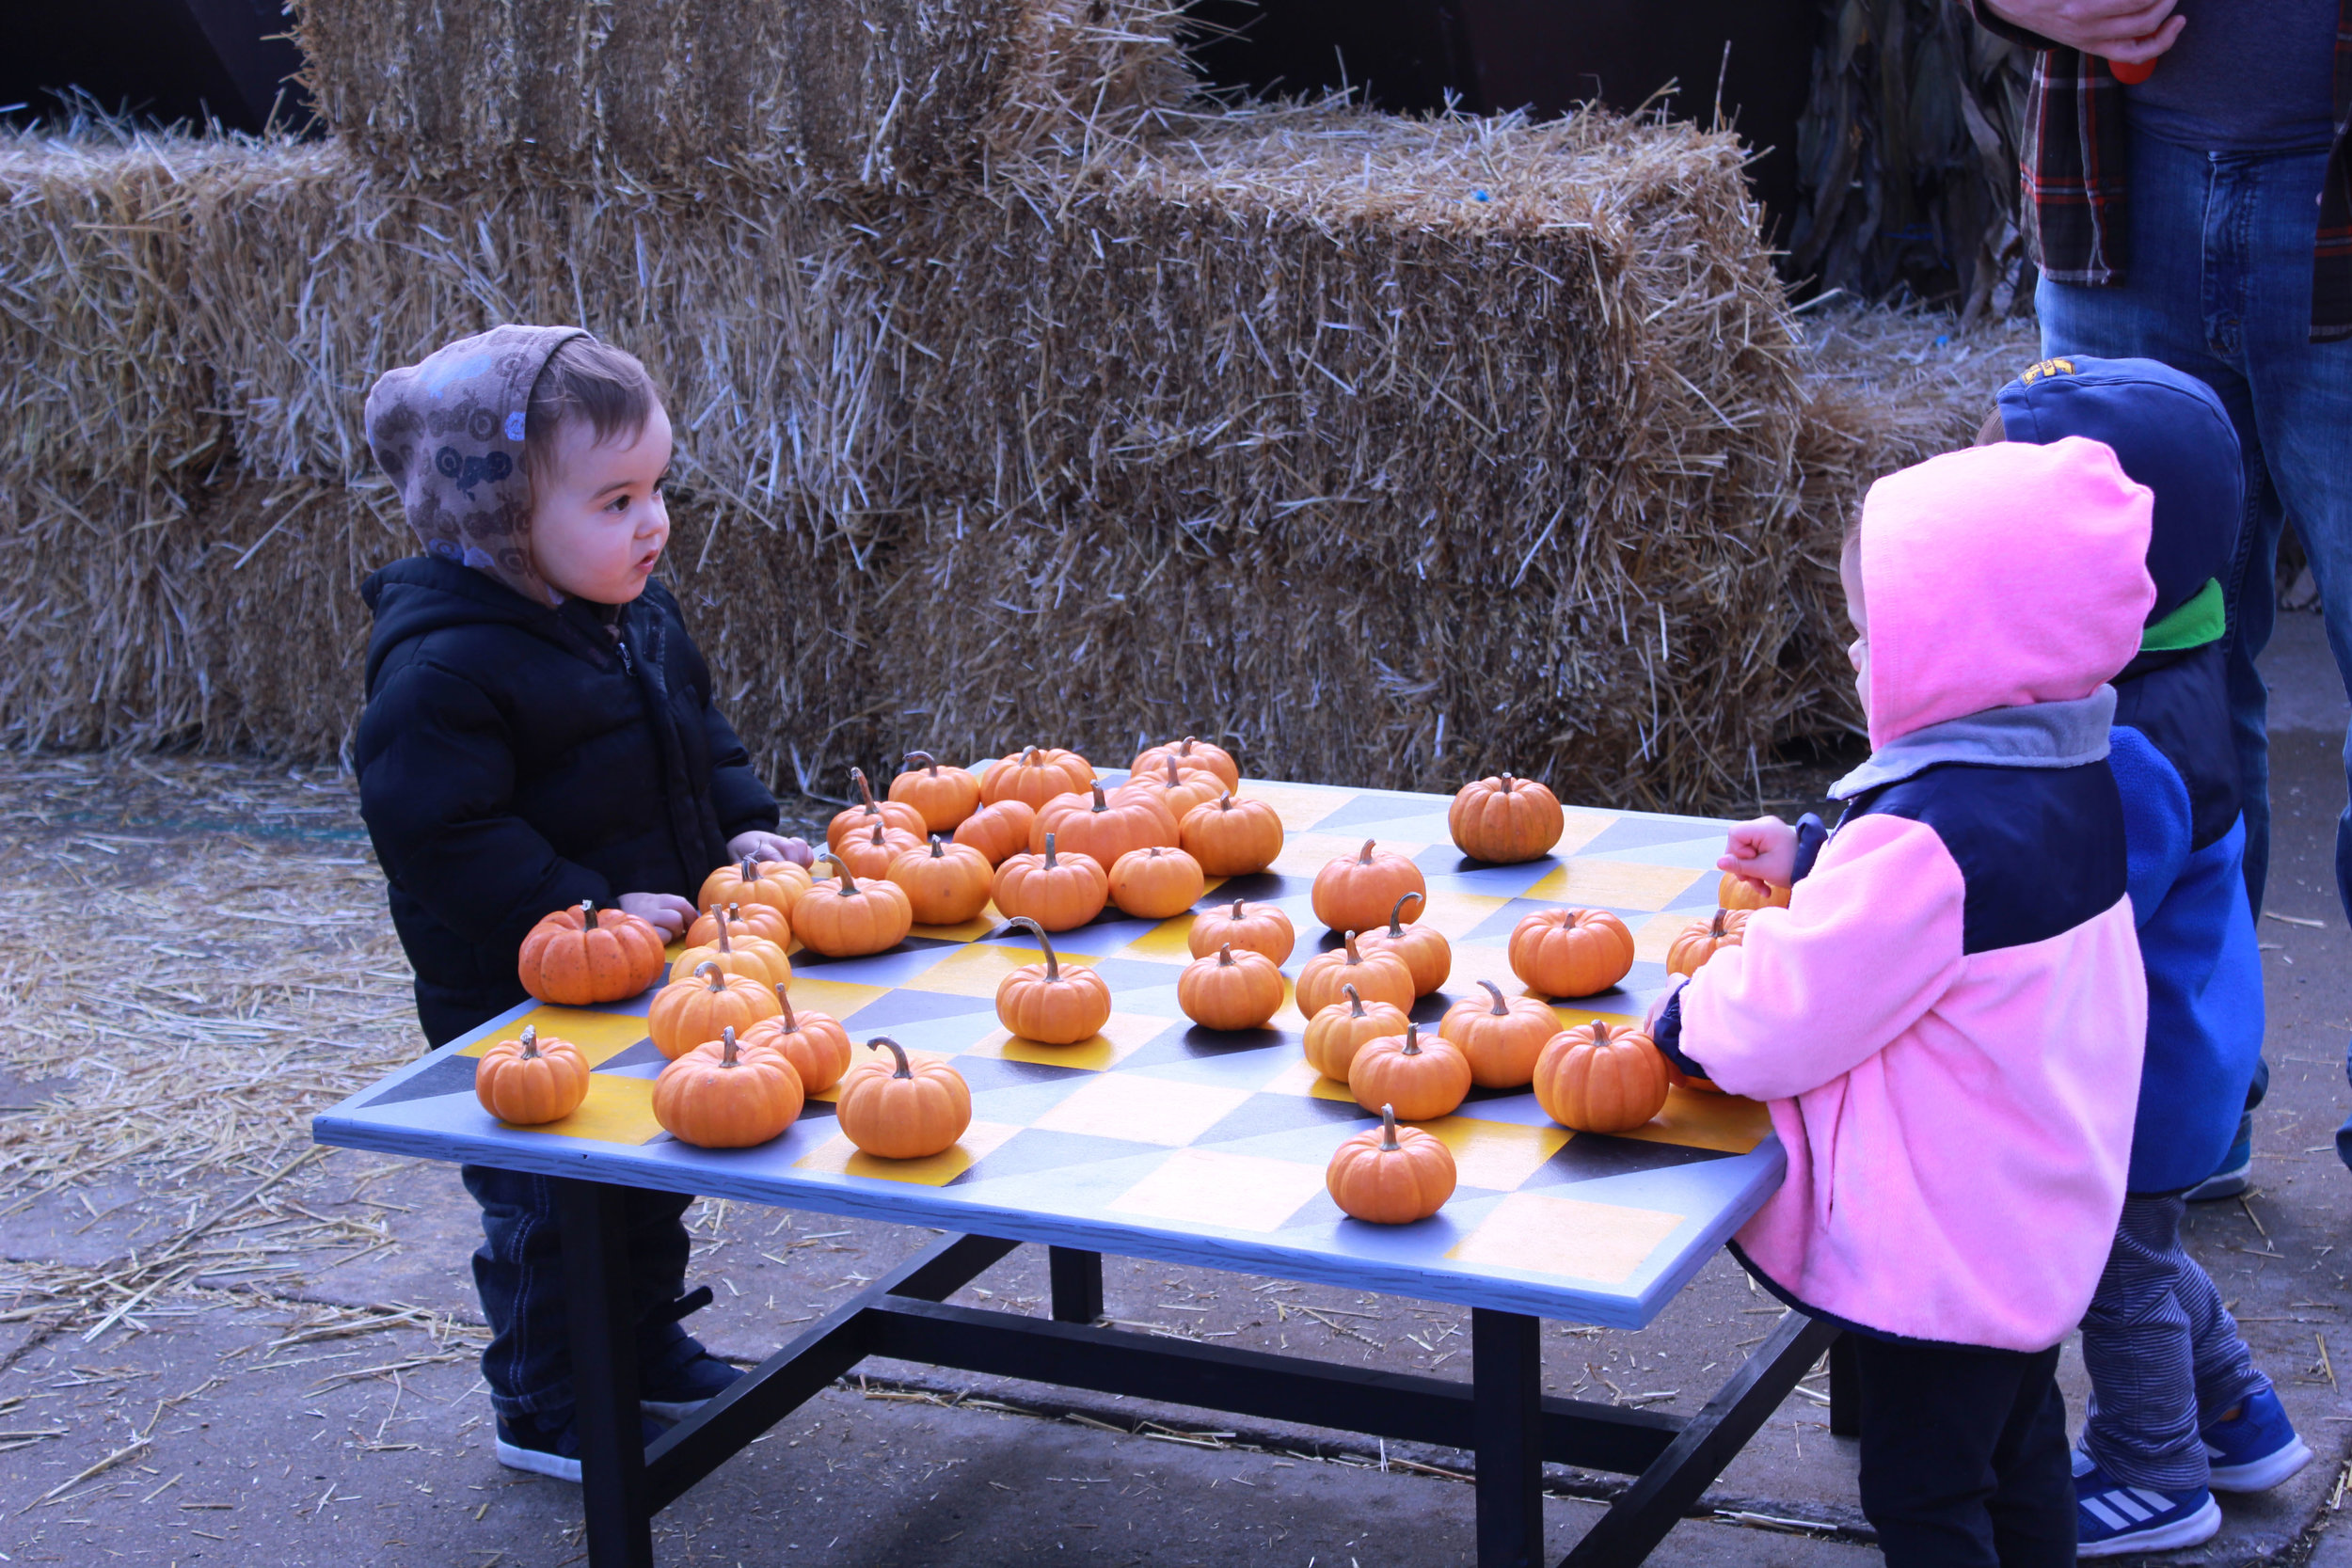 Checkers or chess? Two little tots from the Harvest days event playing outdoors on a mini pumpkin table.